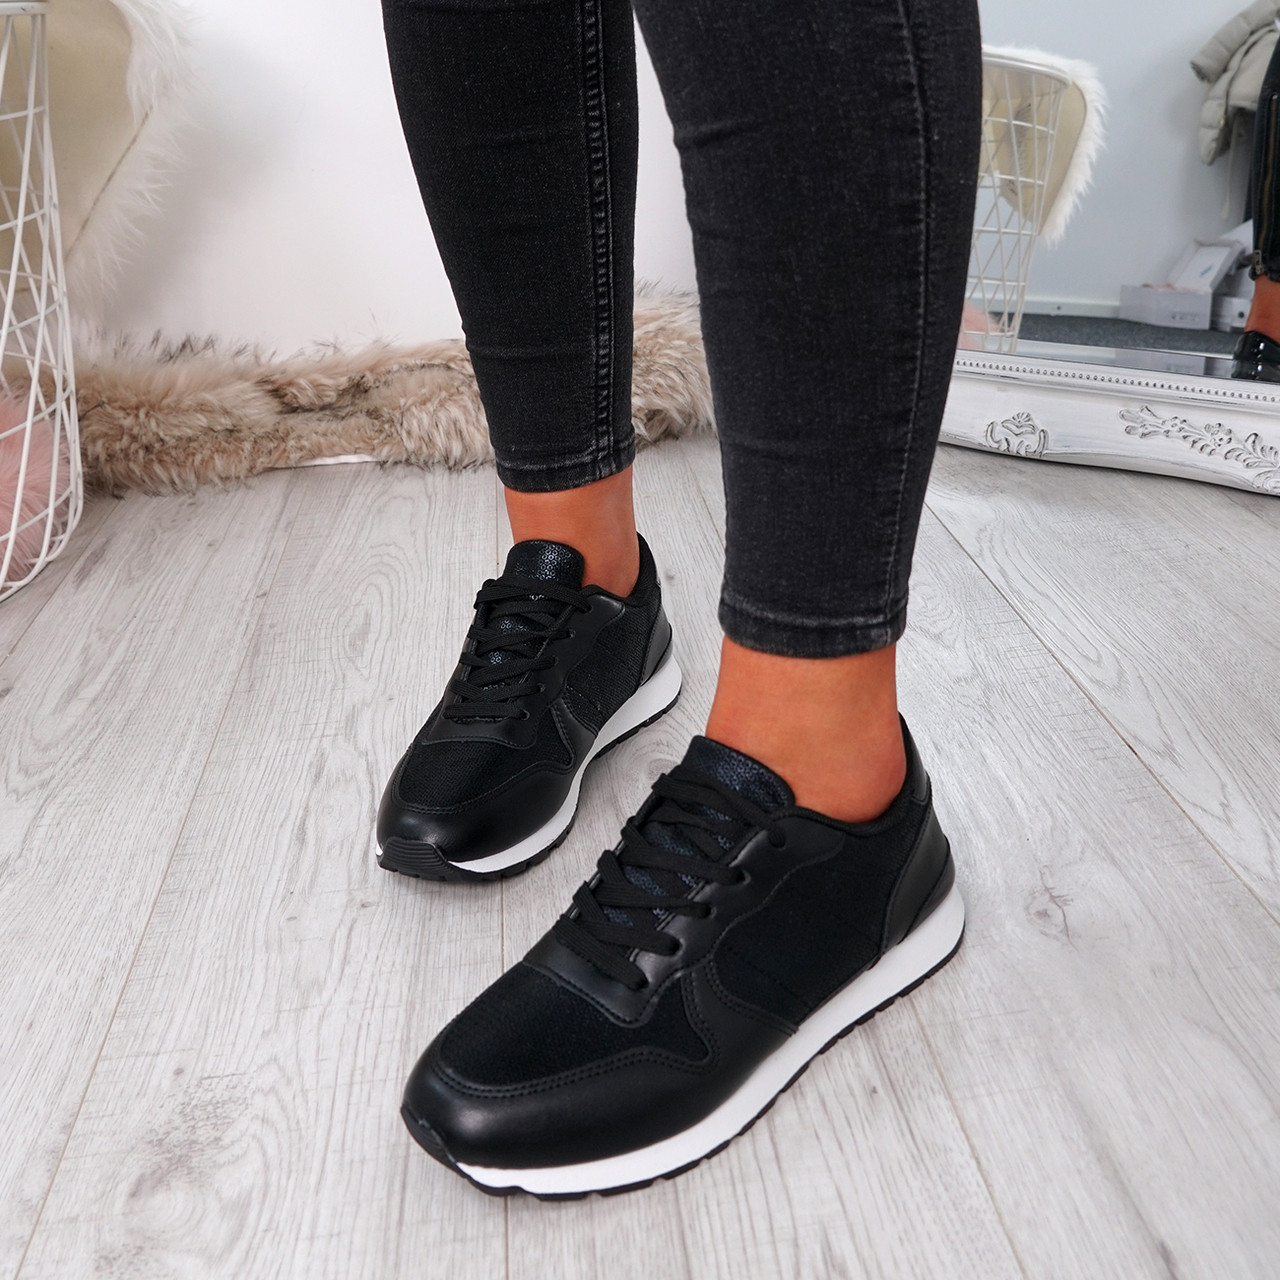 Women's Shoes Nice Us Sports Womens Lace Up Casual Shoes Black Size 6